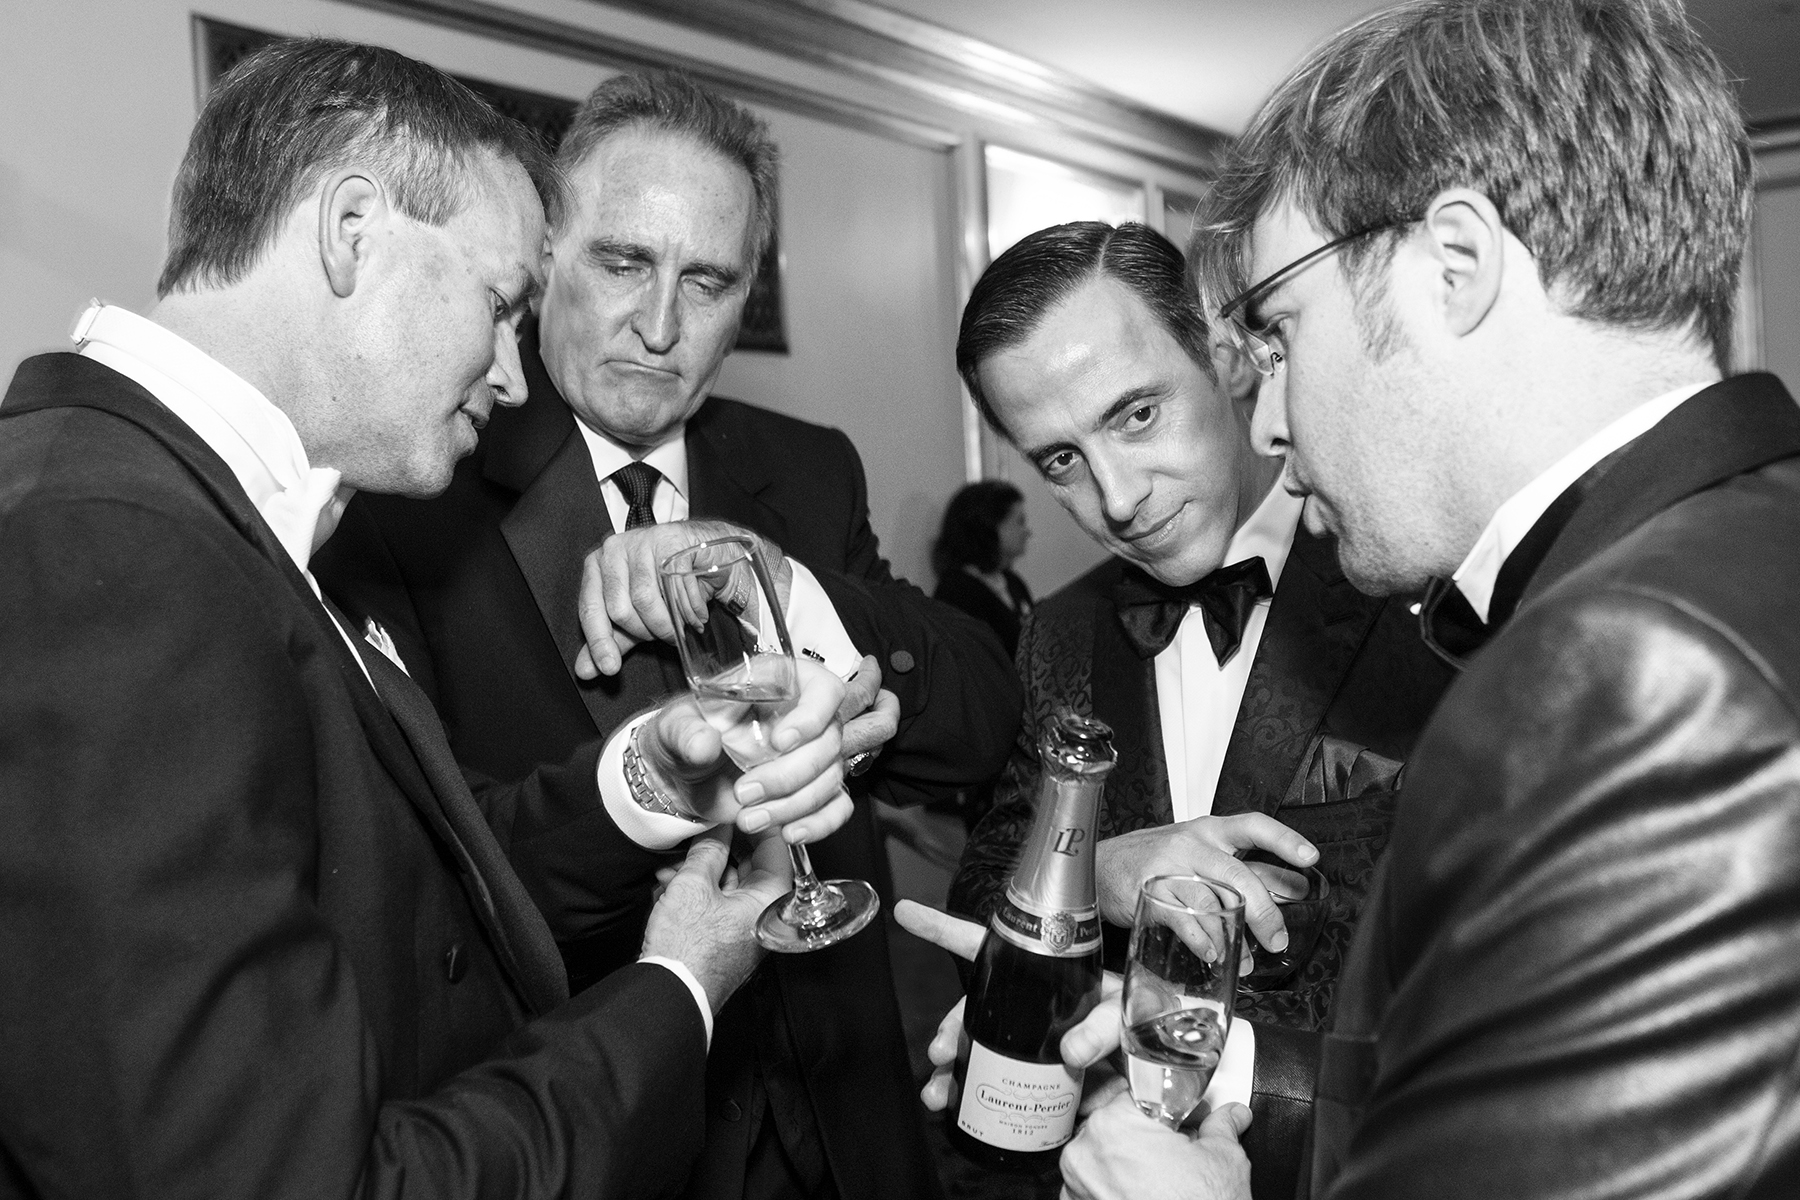 Chip Zecher, Mark Wagoner, Alan Malouf and Matthew Kimball (left to right) compare their cufflinks with one another during intermission at the San Francisco Opera Ball at War Memorial Opera House in San Francisco, Calif., on Friday, September 7, 2012.This photograph is of a candid moment and was not directed in any way.